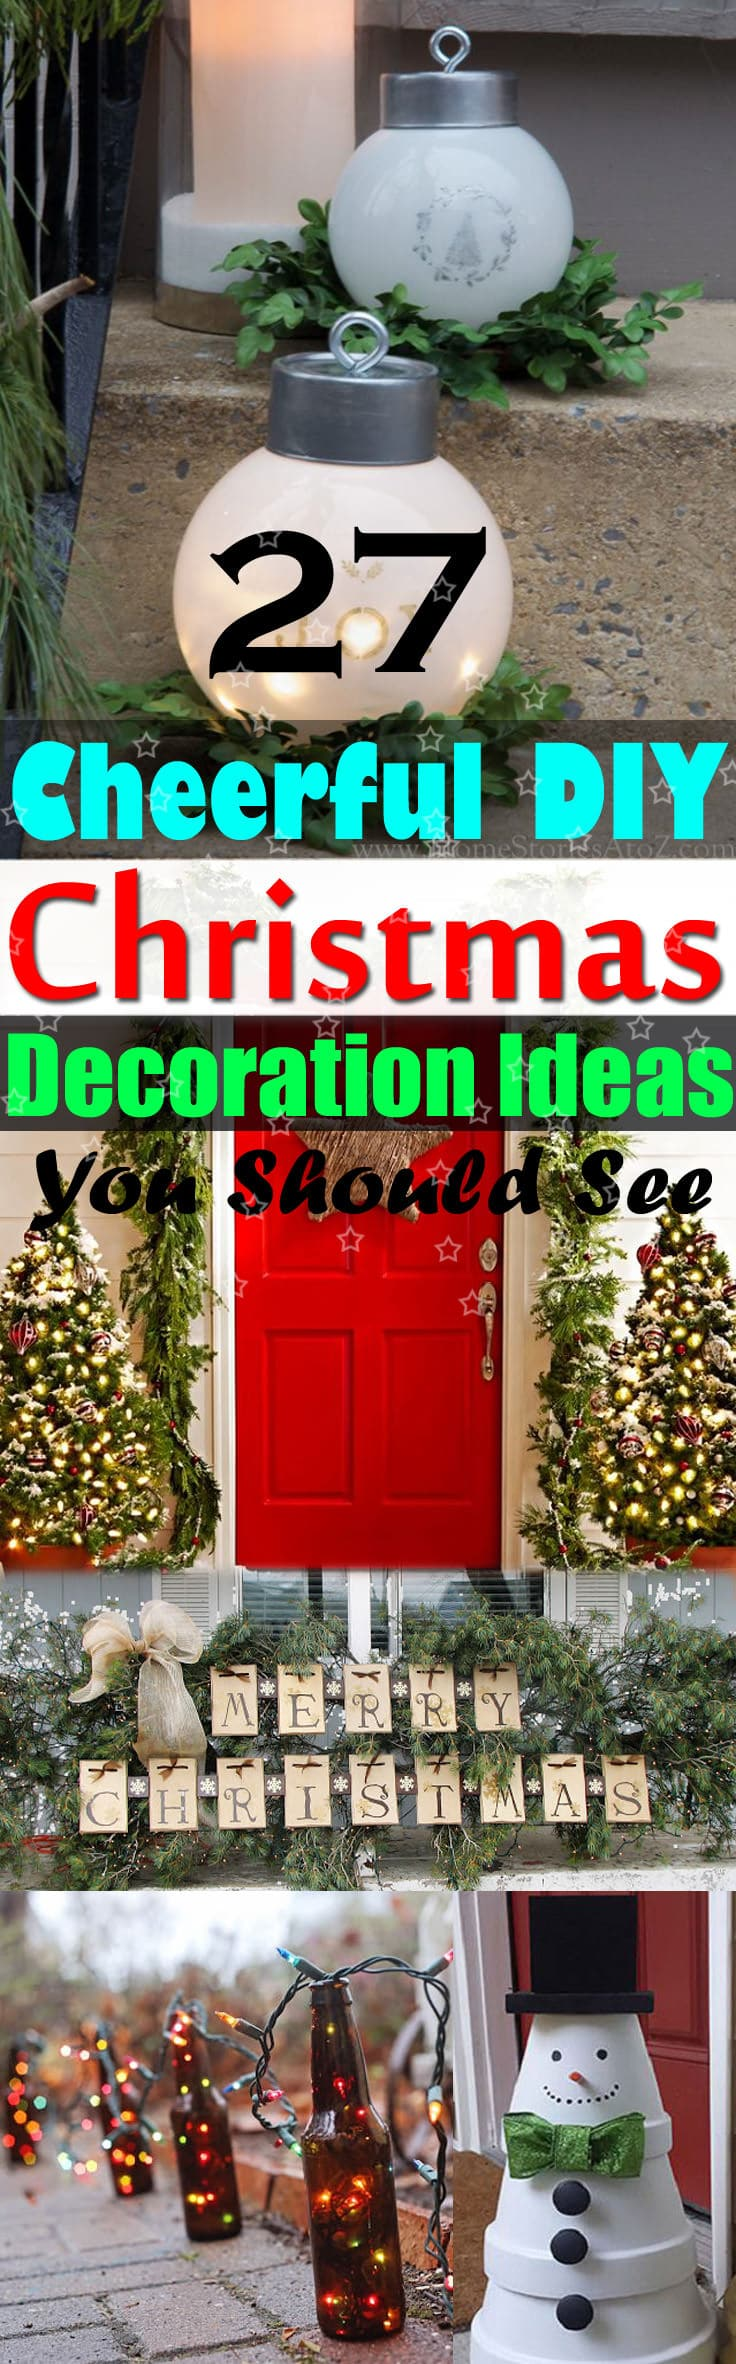 Take a look at these 27 DIY Christmas decoration ideas. They are cheap, easy and fun and following them can make your festive season special!